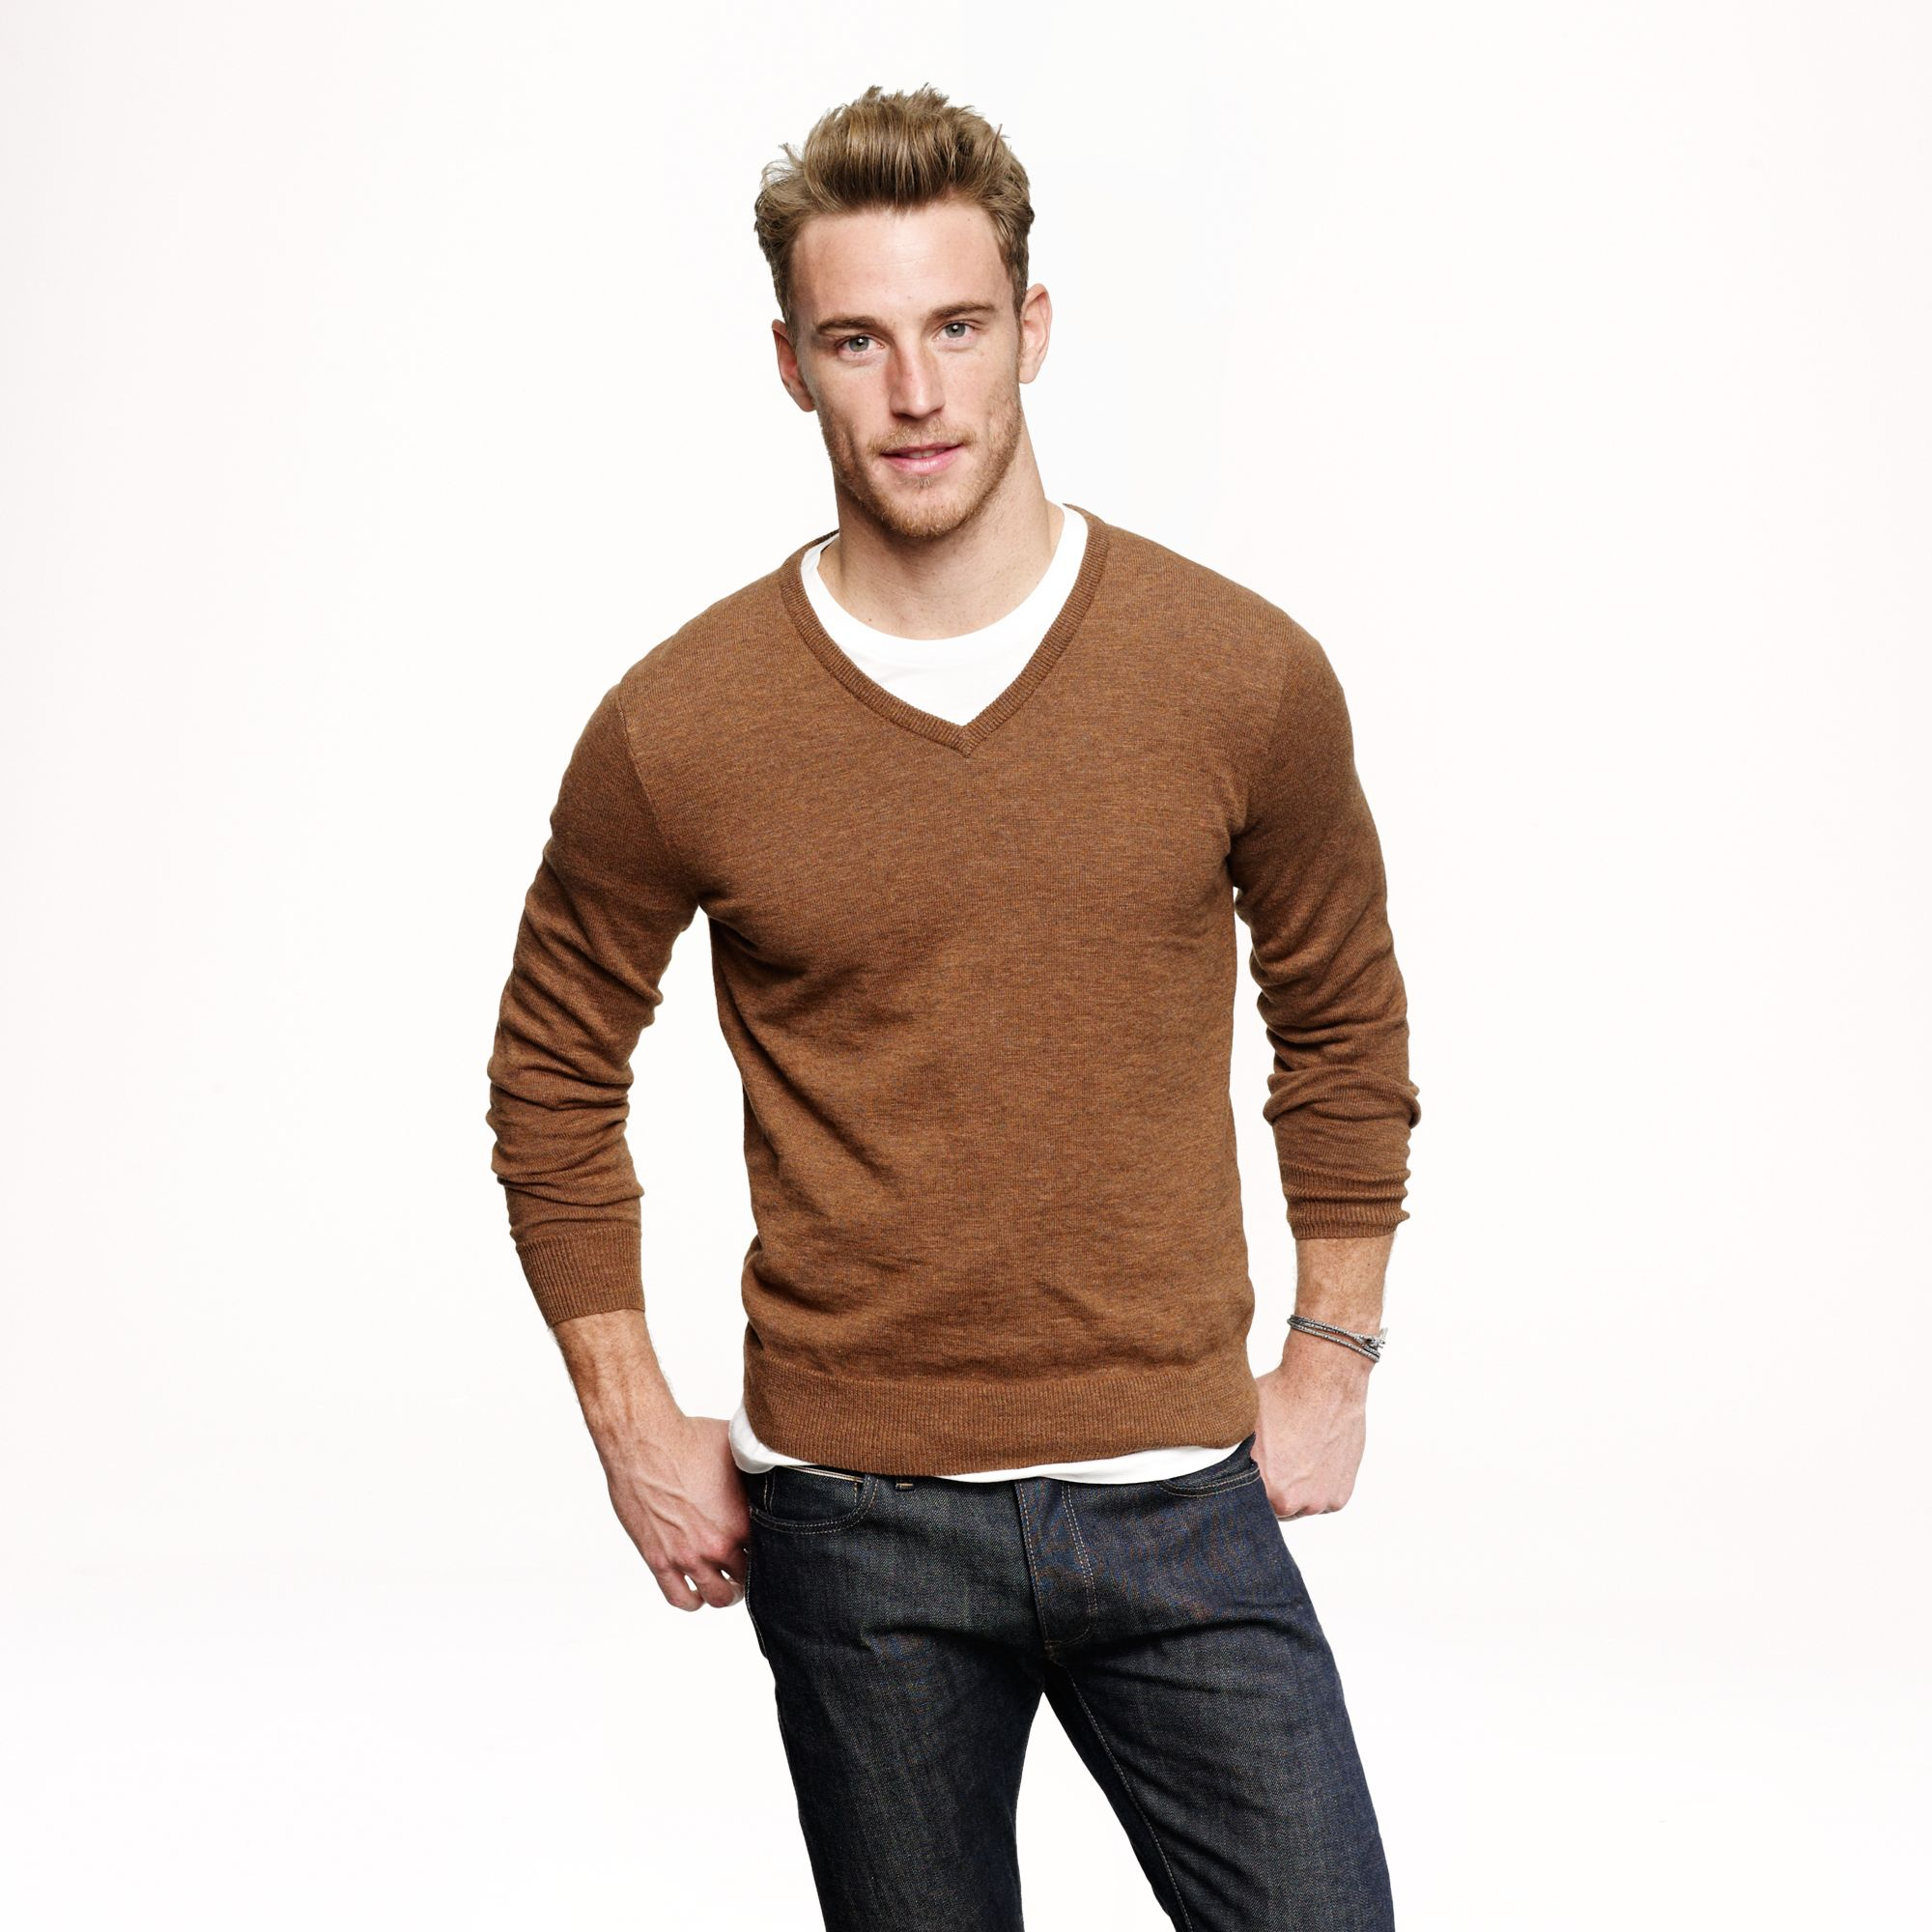 What To Wear Under Brown V Neck Sweater - English Sweater Vest